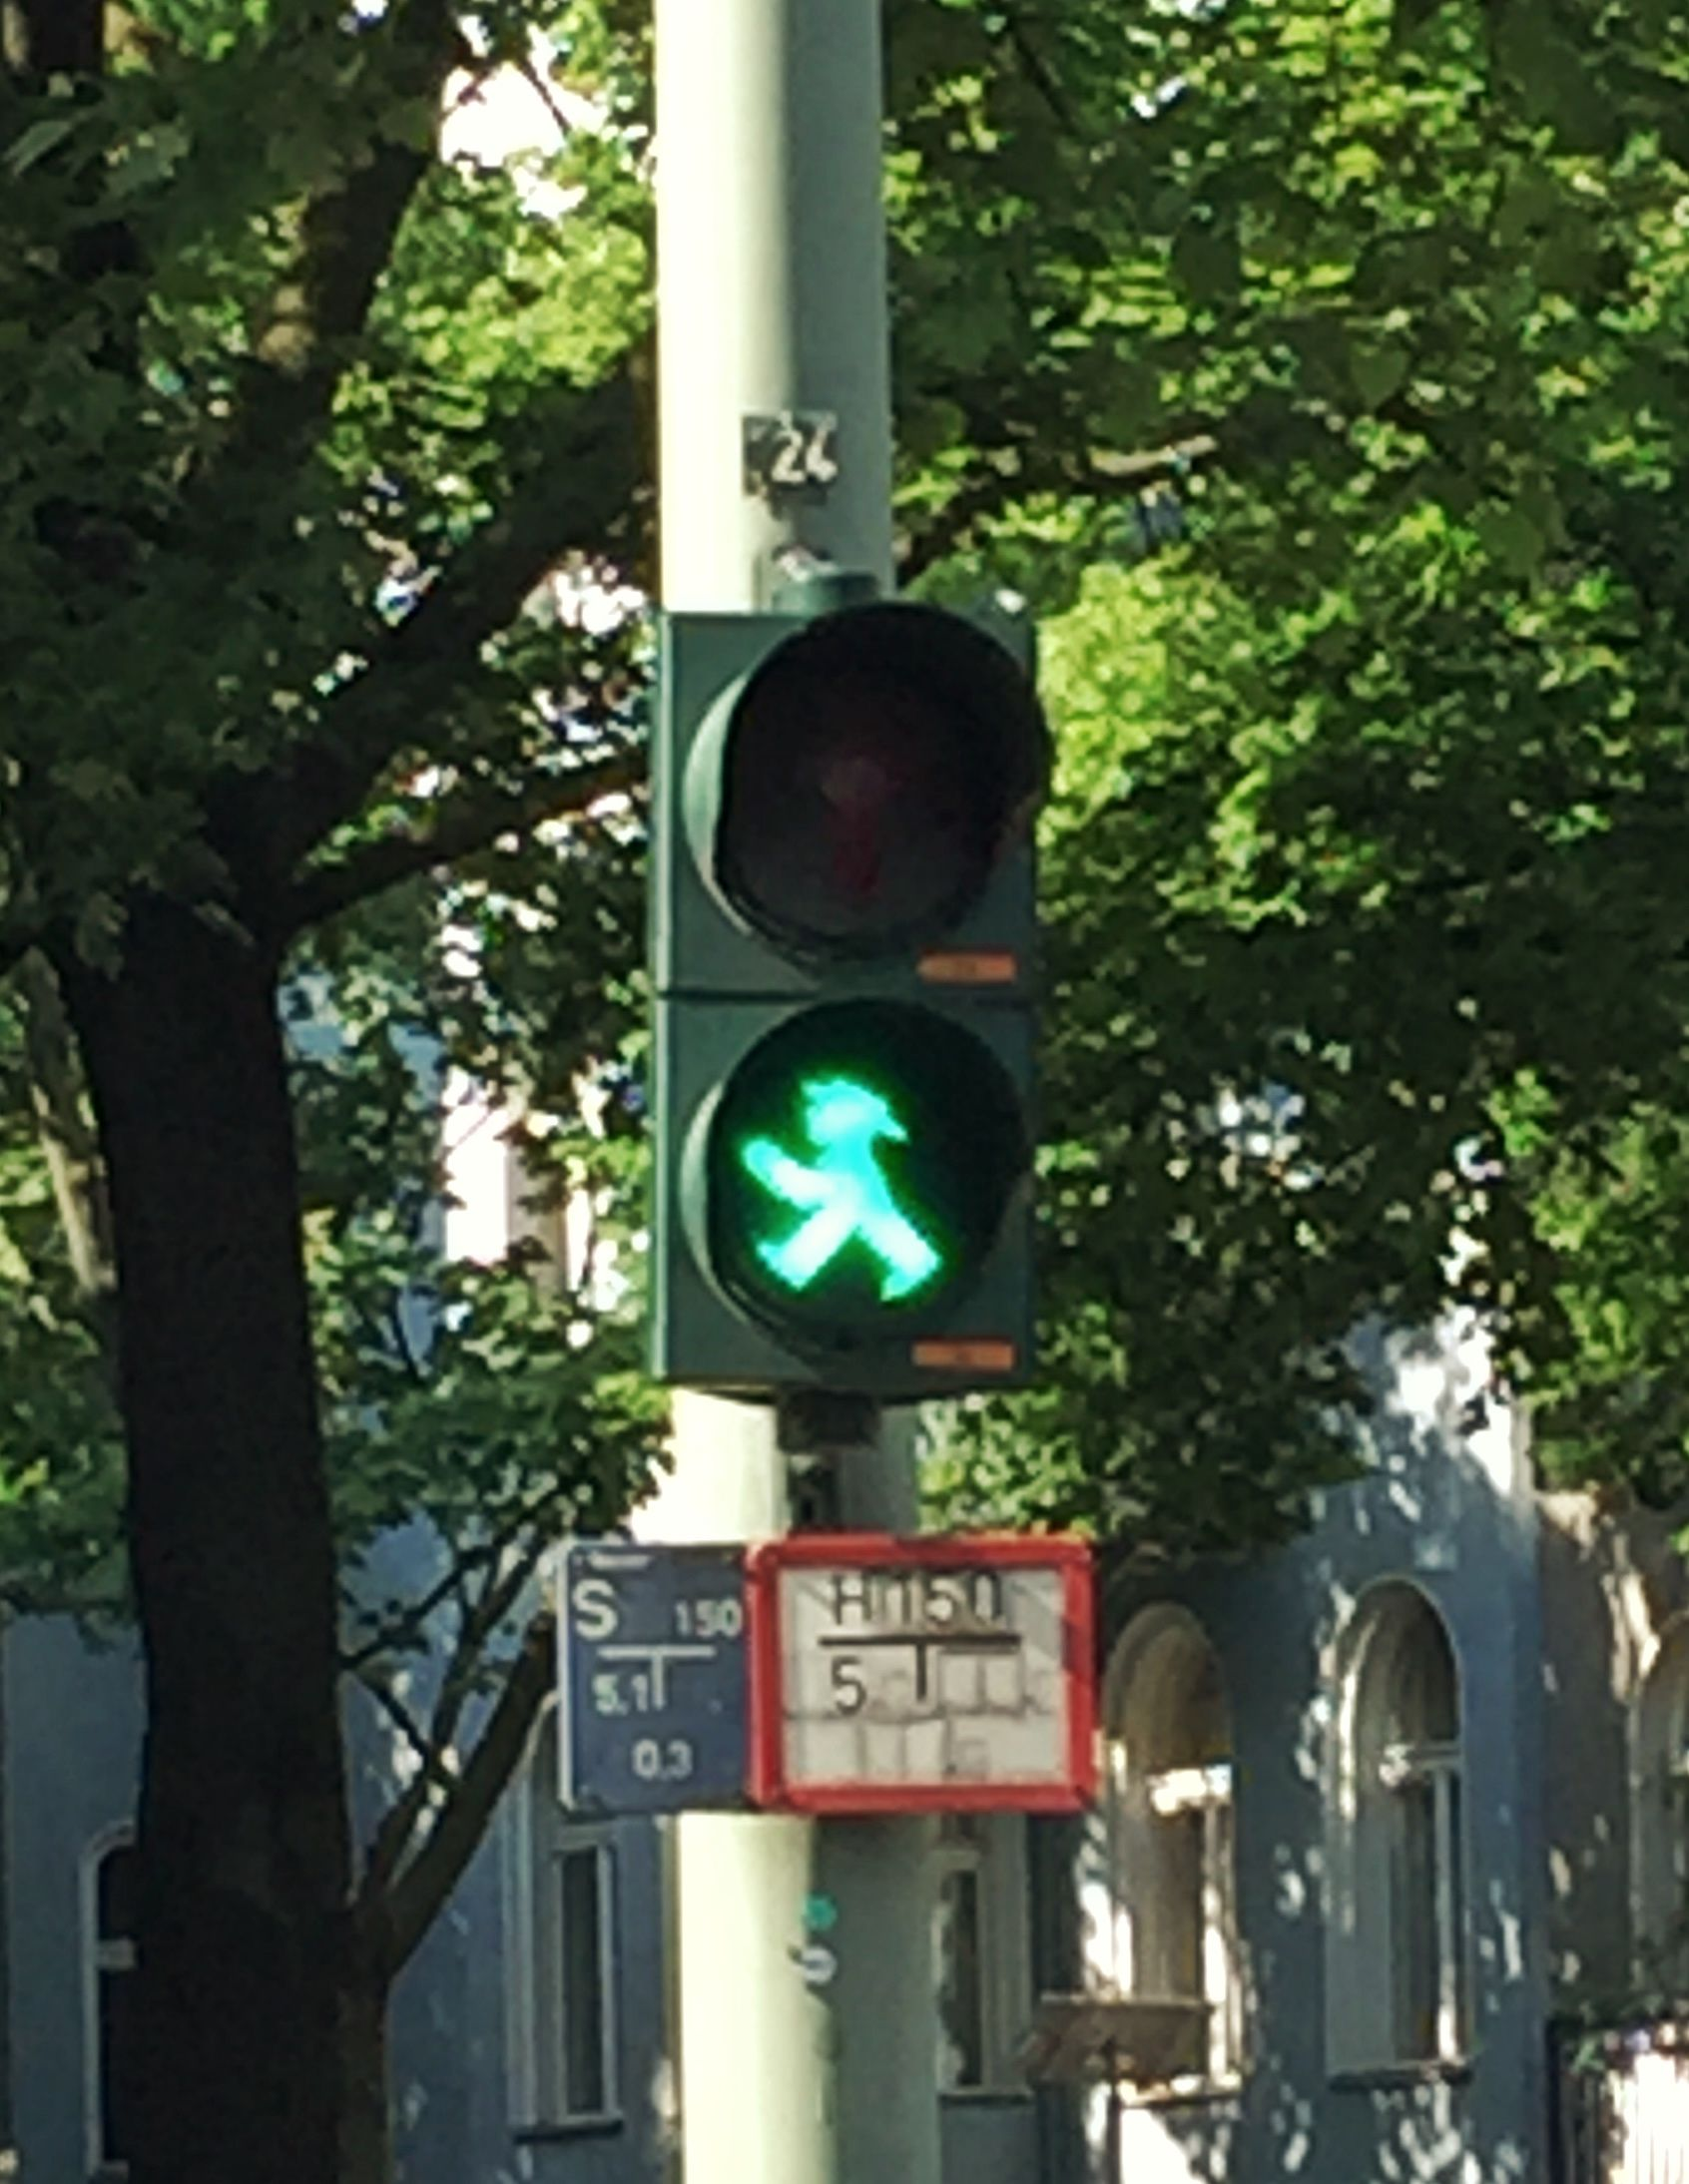 Ampelmann is an iconic Berlin symbol. He even has his own gift shop!